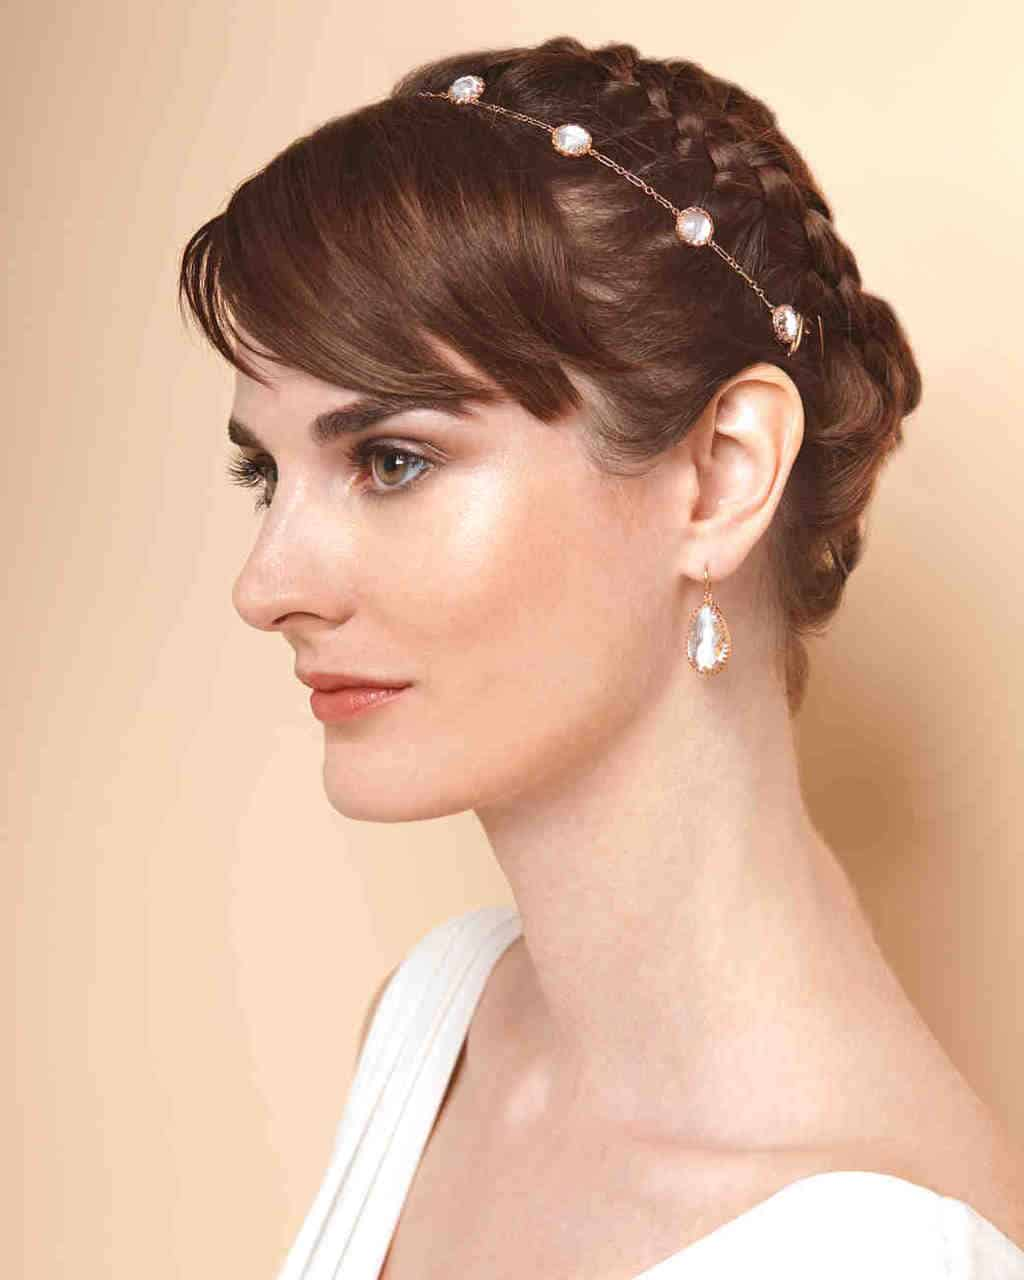 10 Cute and Fun Short Flip Hairstyles for Summer Romance